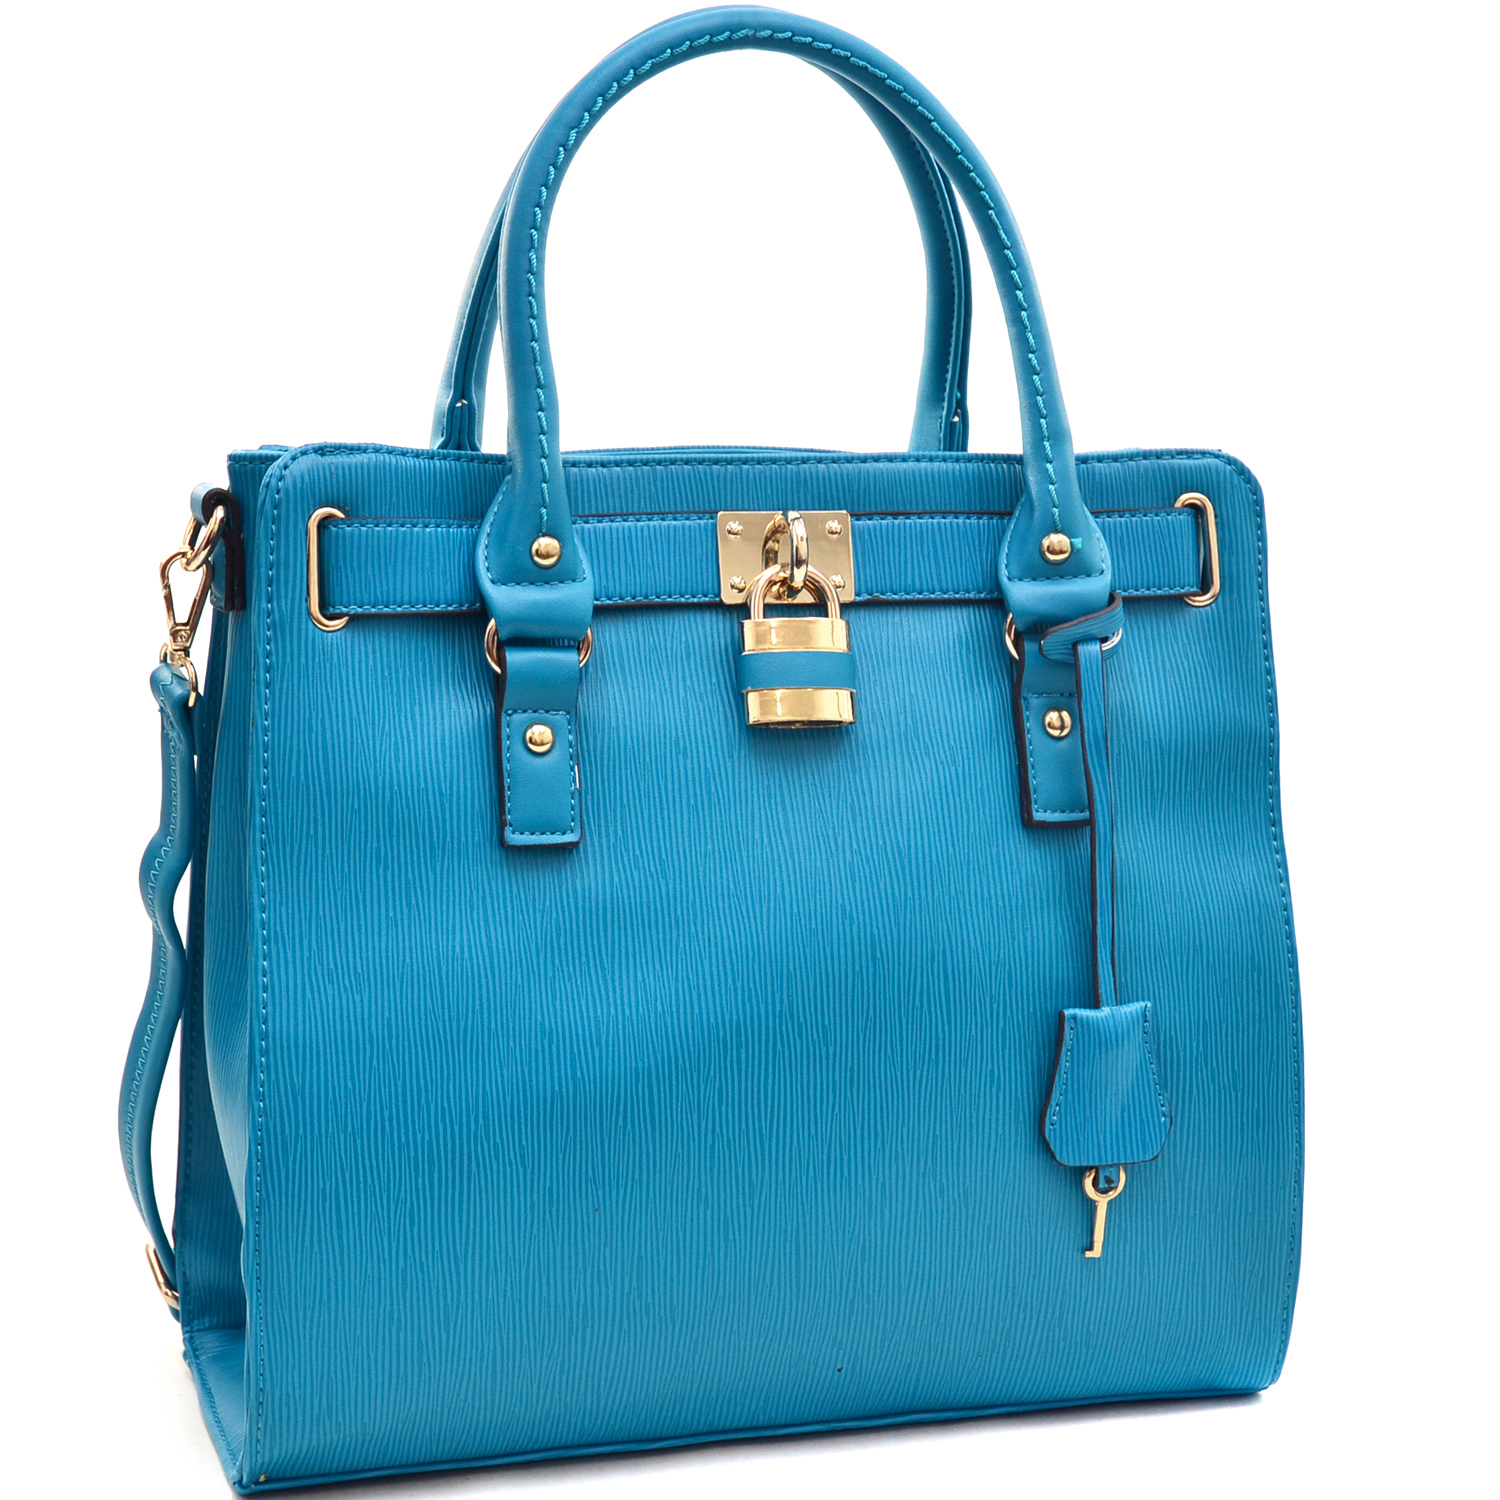 Epi Texture Satchel with Lock Accent and Key Tassel